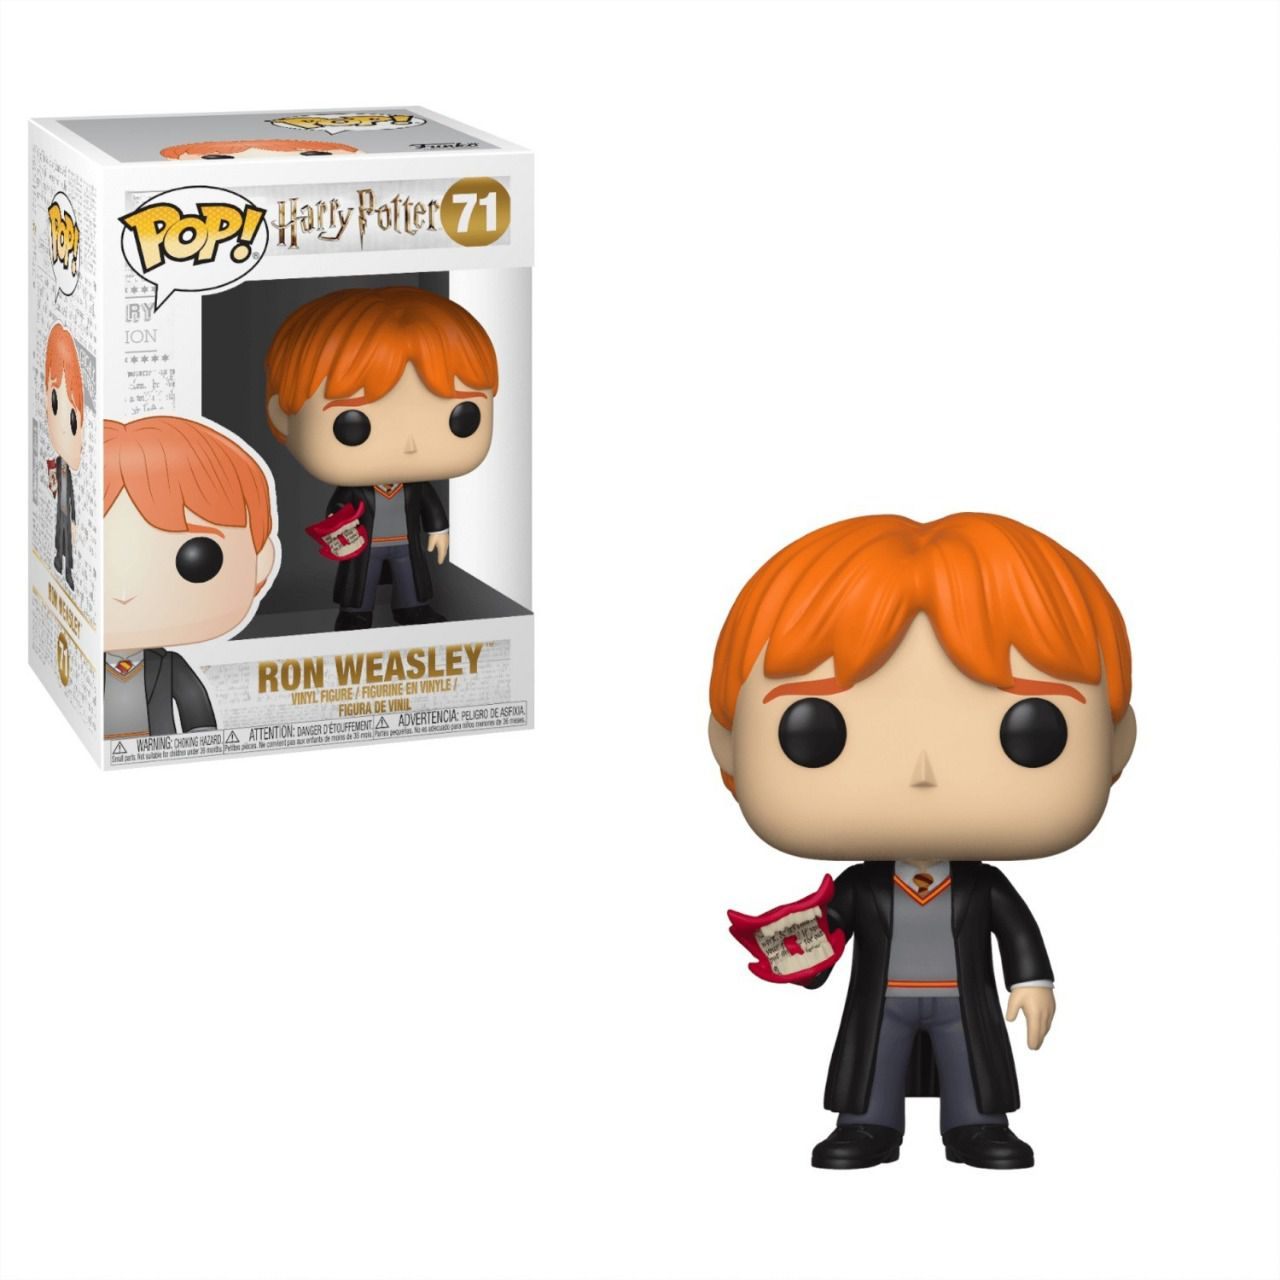 Funko POP Harry Potter Ron Weasley - 71